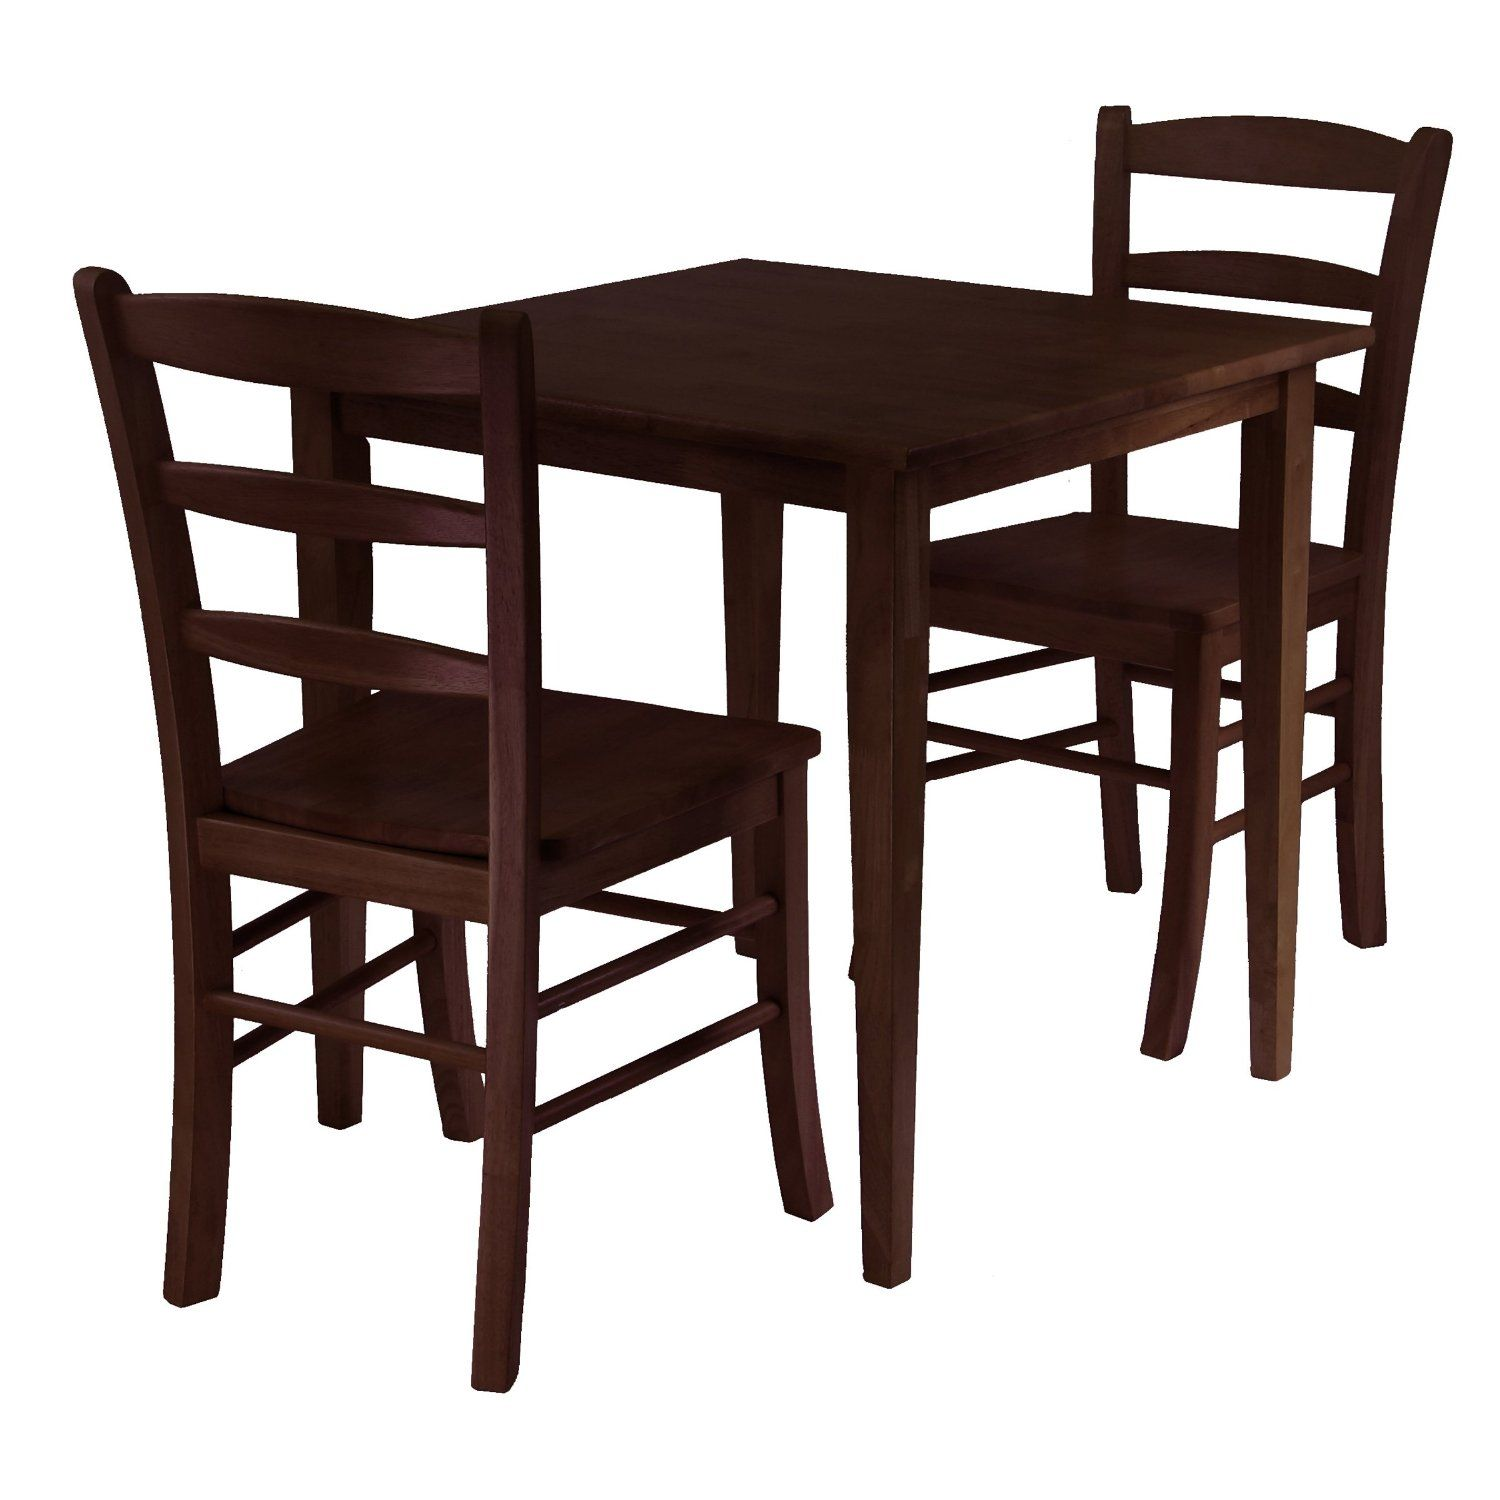 10 Small Dinette Set Design  Kitchen Eating Areas Square Dining Classy Three Piece Dining Room Set Inspiration Design